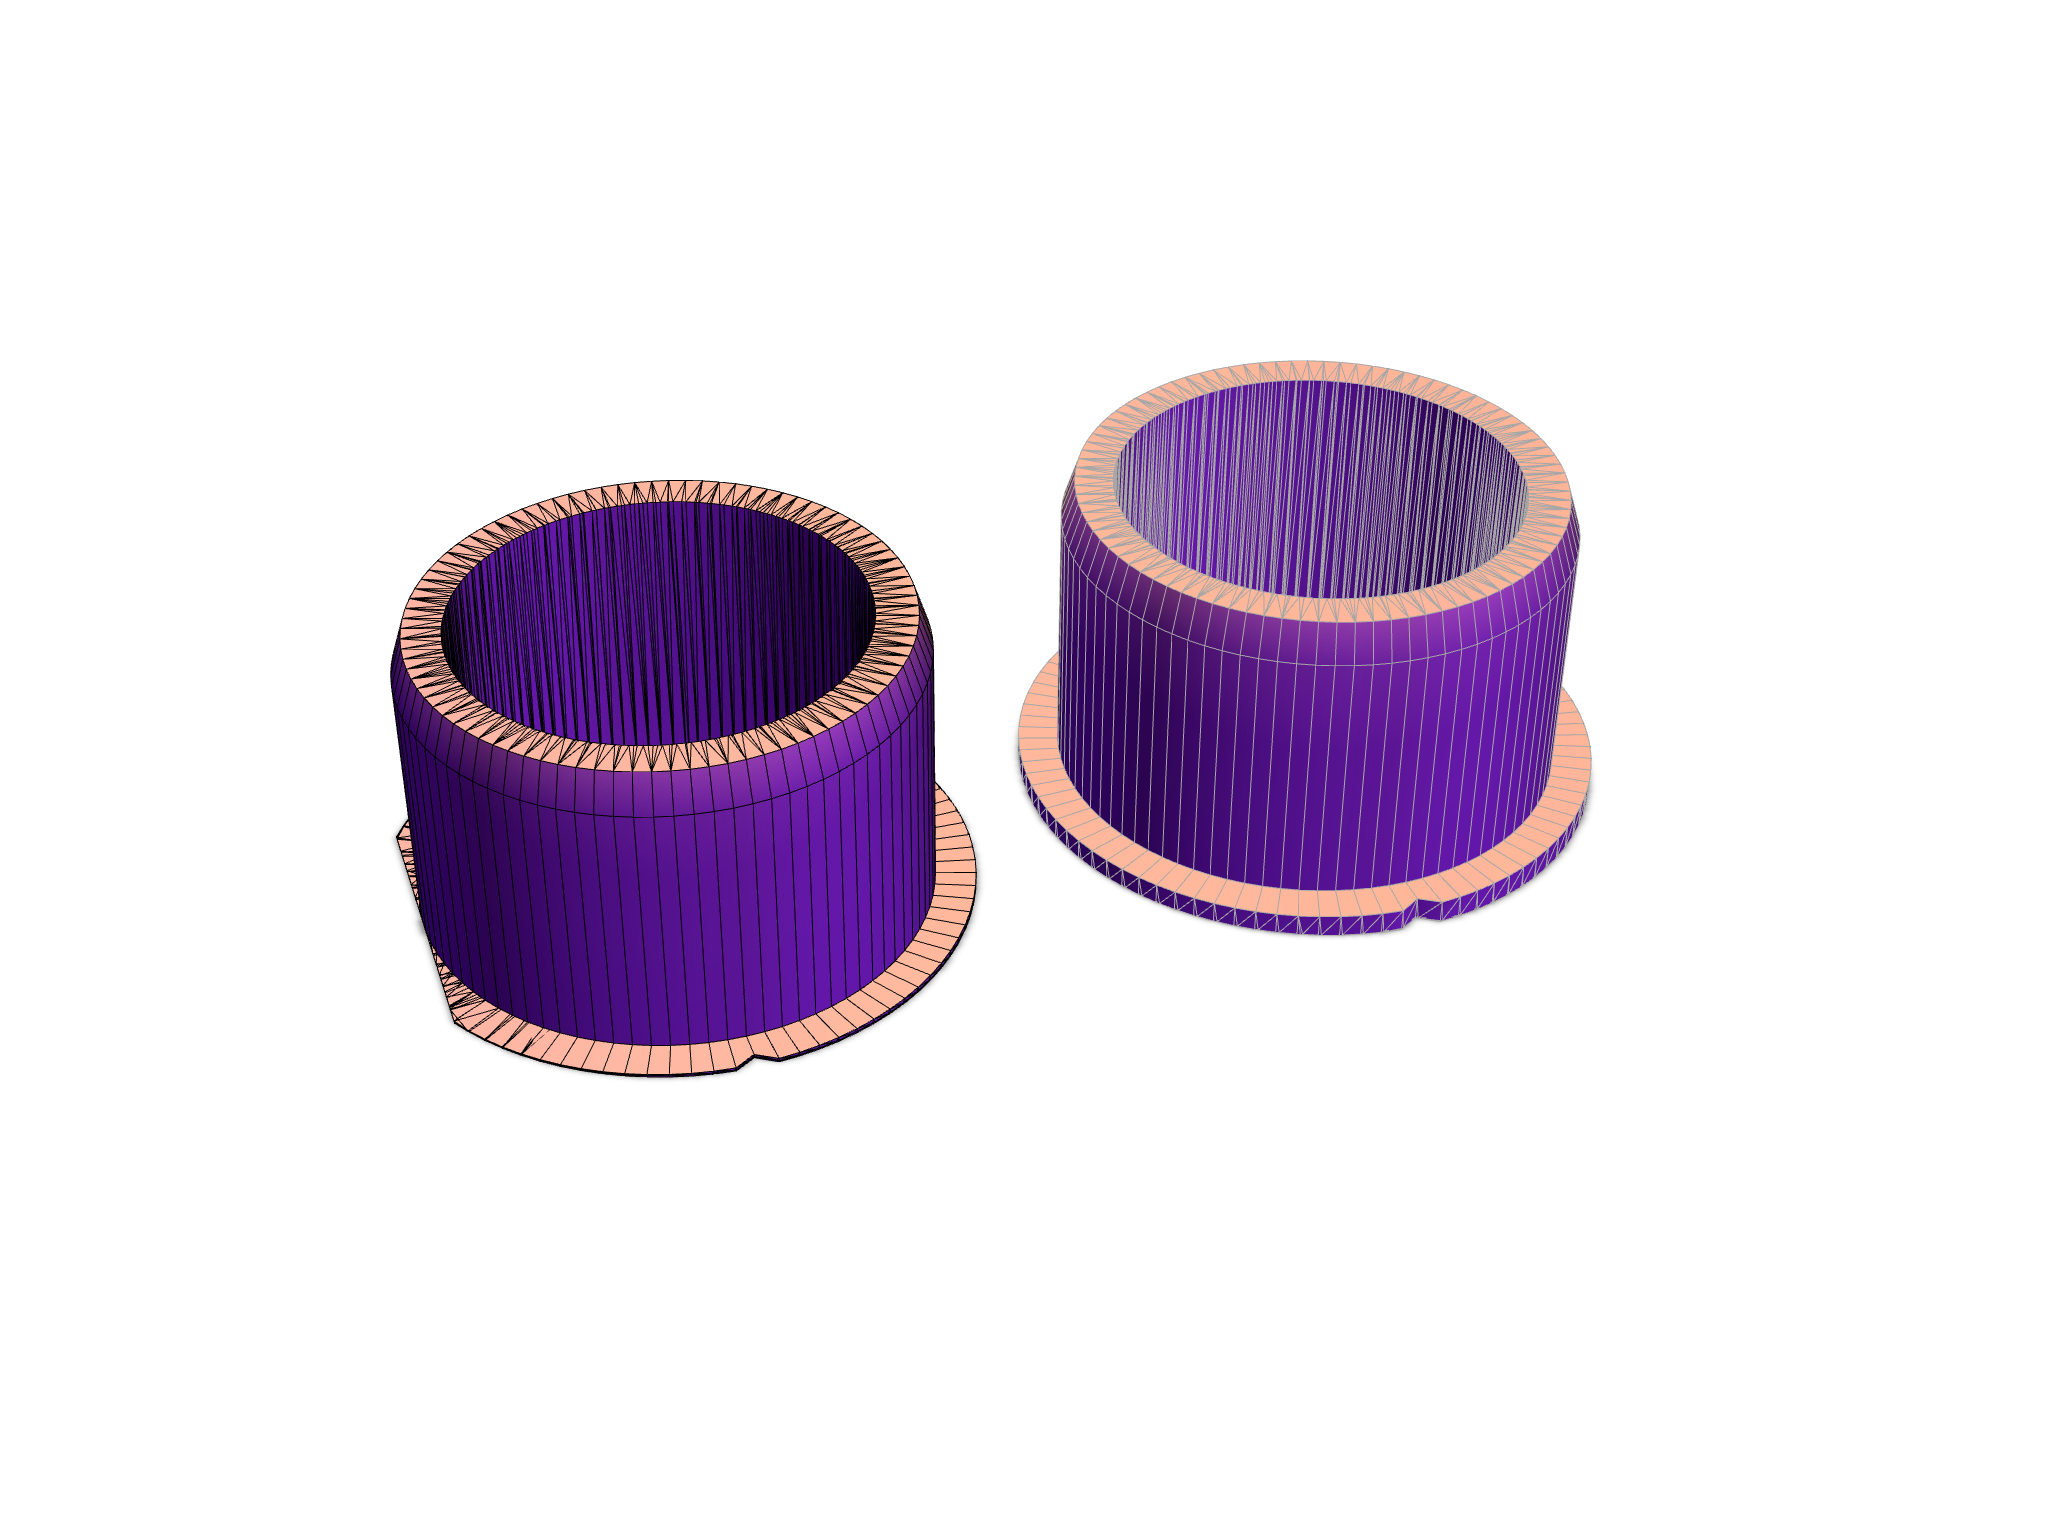 GazelleCabby_TSDZ2_midmotor_bb_adapters - 3D design by NovapaX on Jan 22, 2018